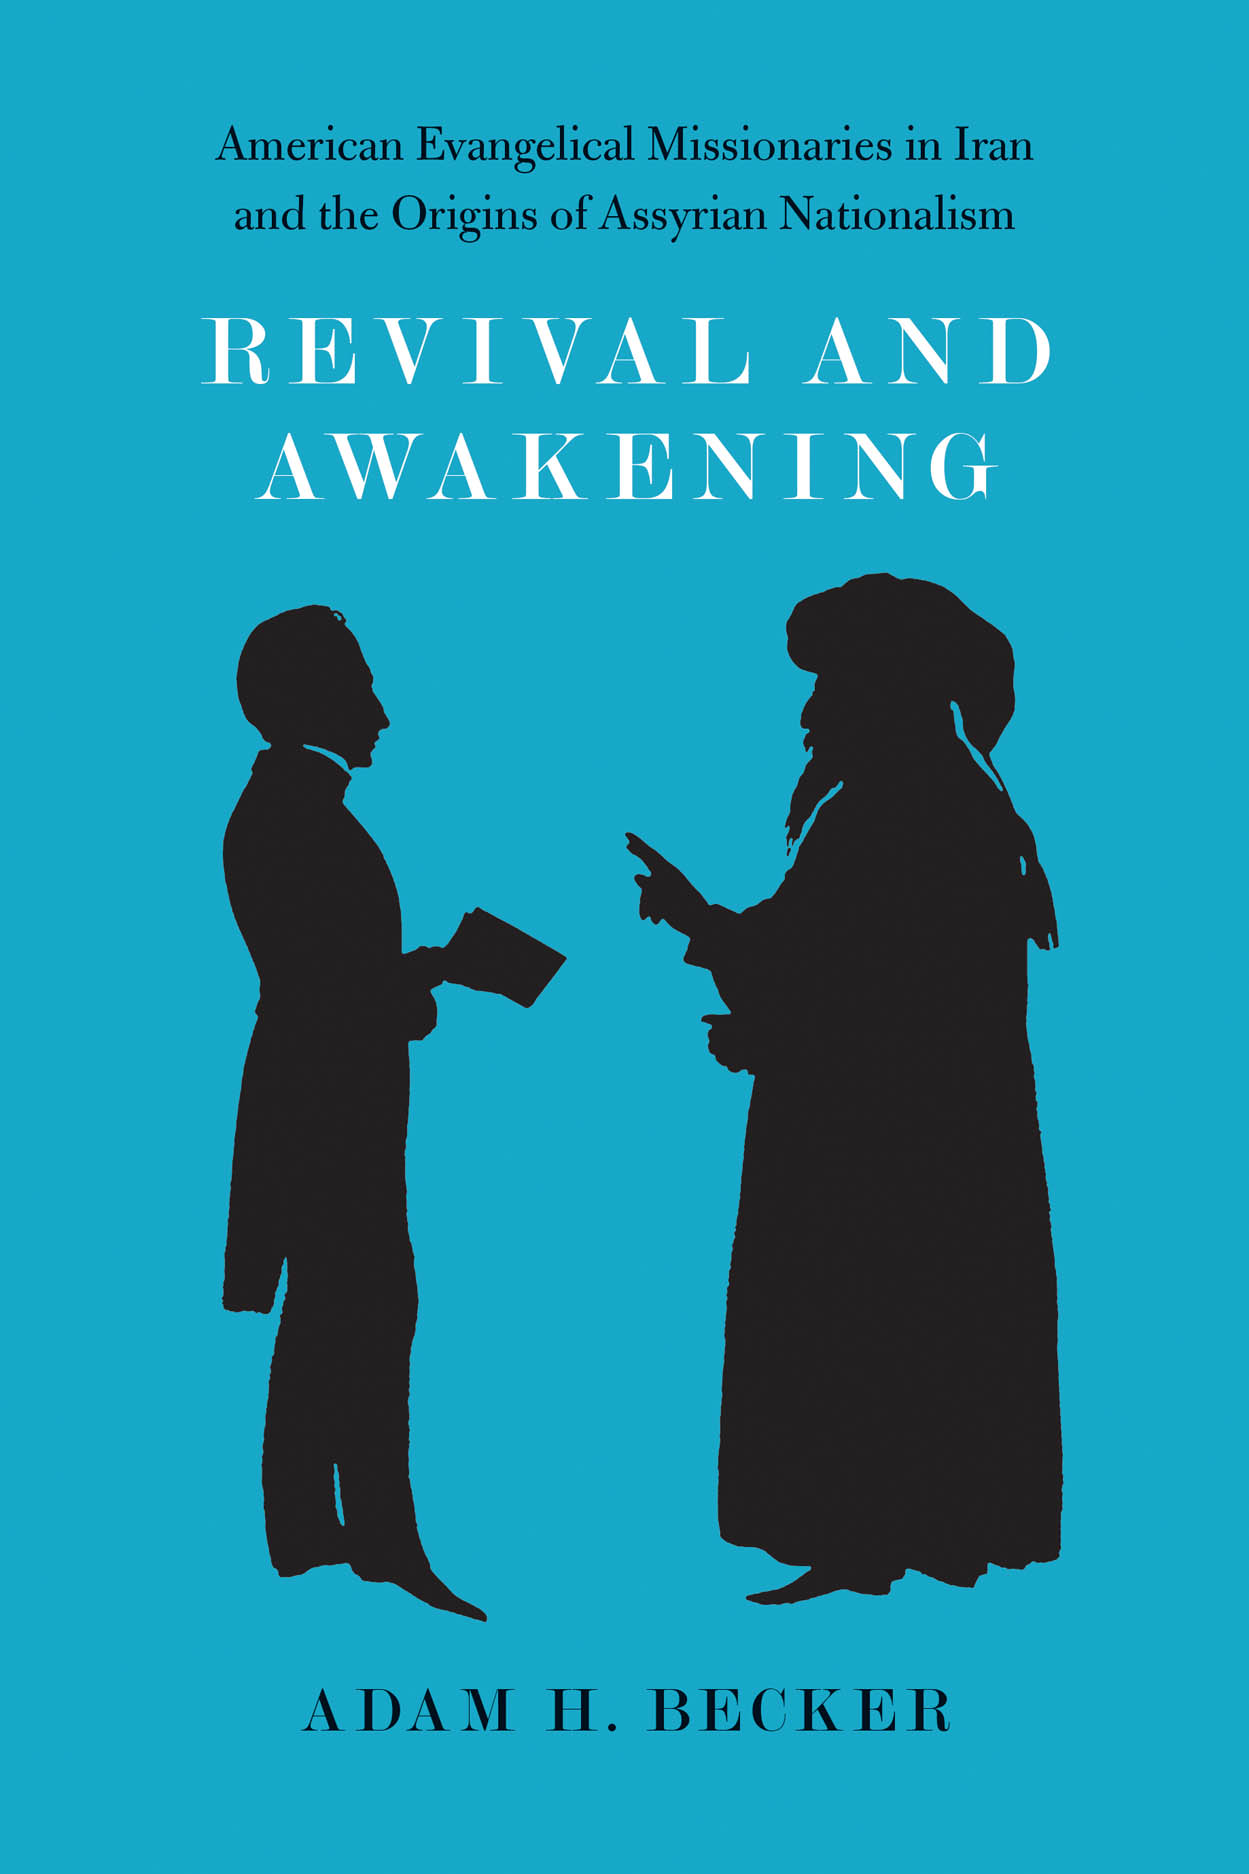 Revival and Awakening: American Evangelical Missionaries in Iran and the Origins of Assyrian Nationalism